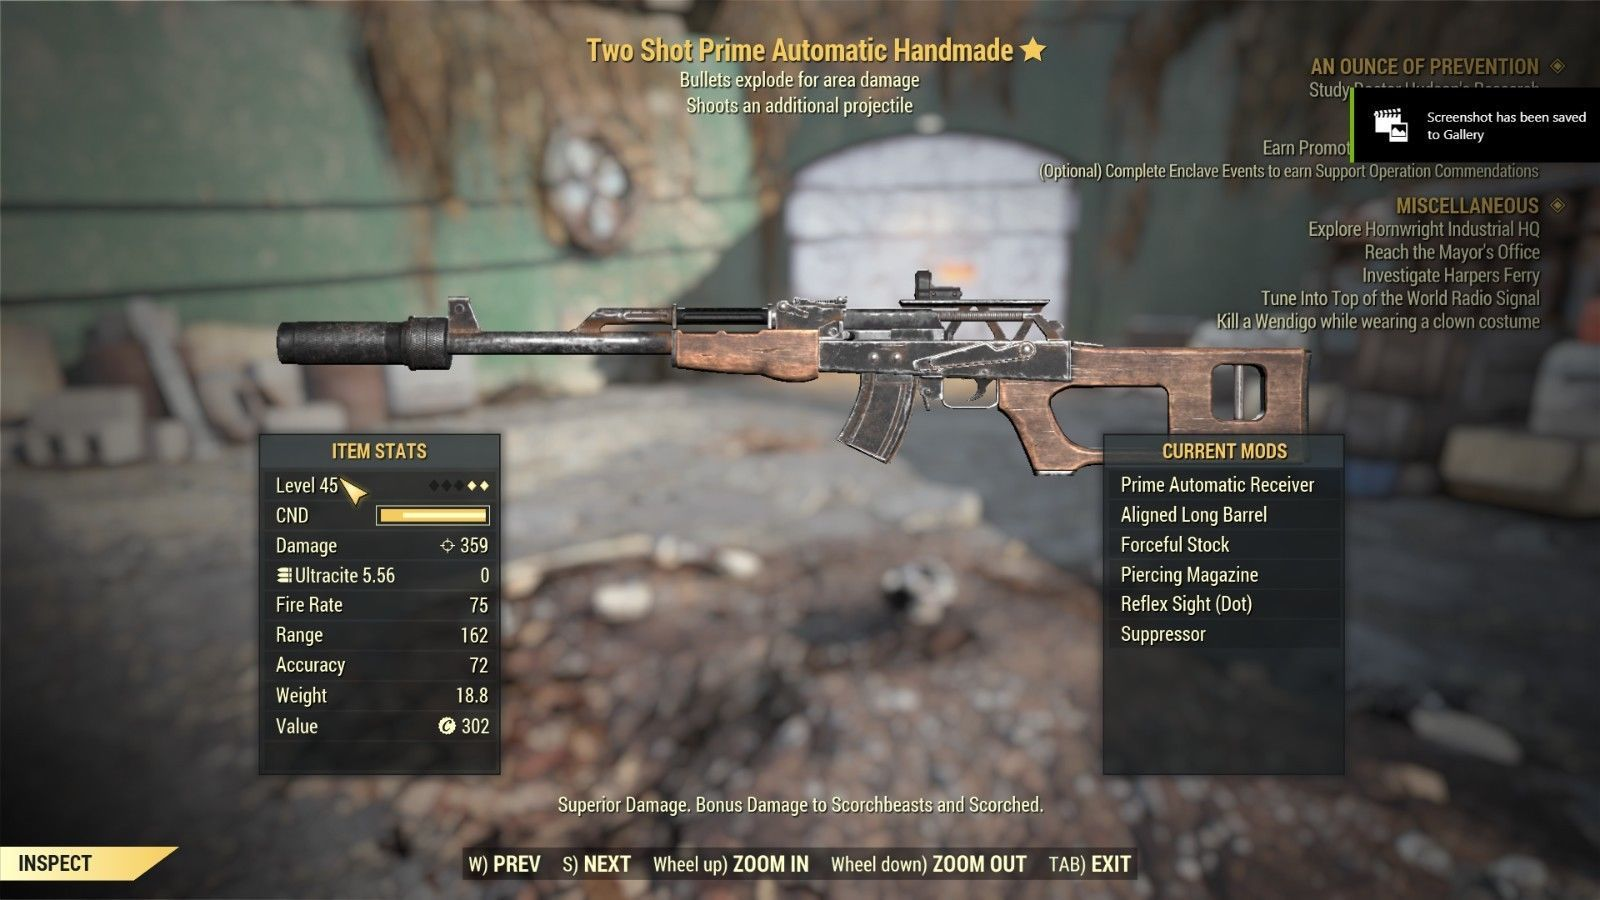 Video Game Merchandise 38583: Fallout 76 [Pc] Two Shot Explosive